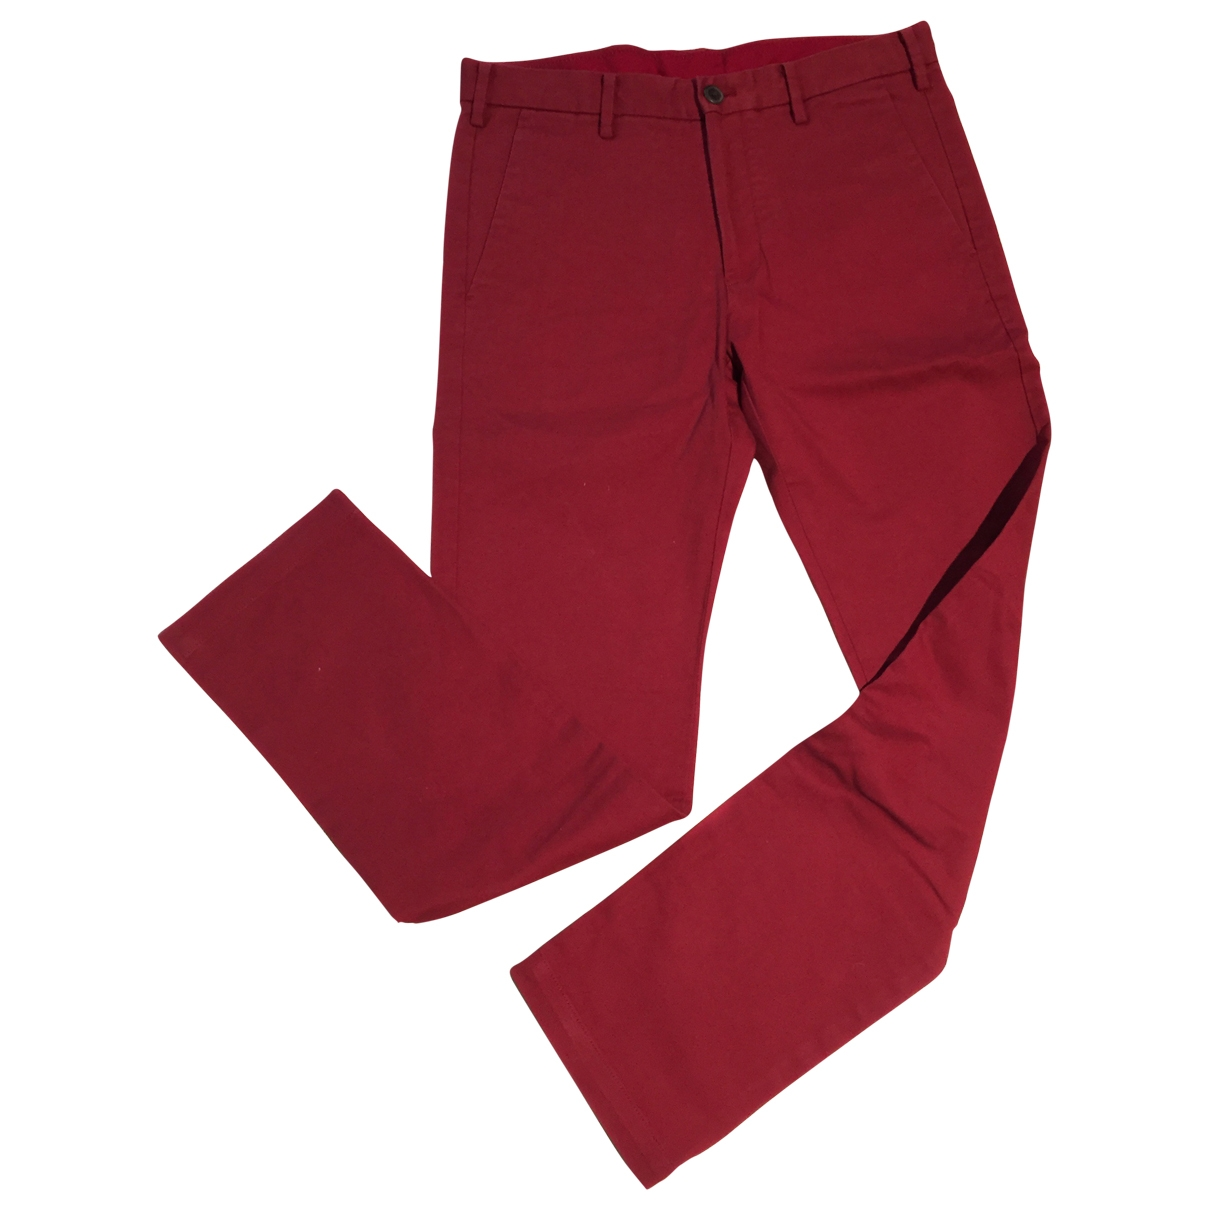 Uniqlo \N Burgundy Cotton Trousers for Men 30 UK - US